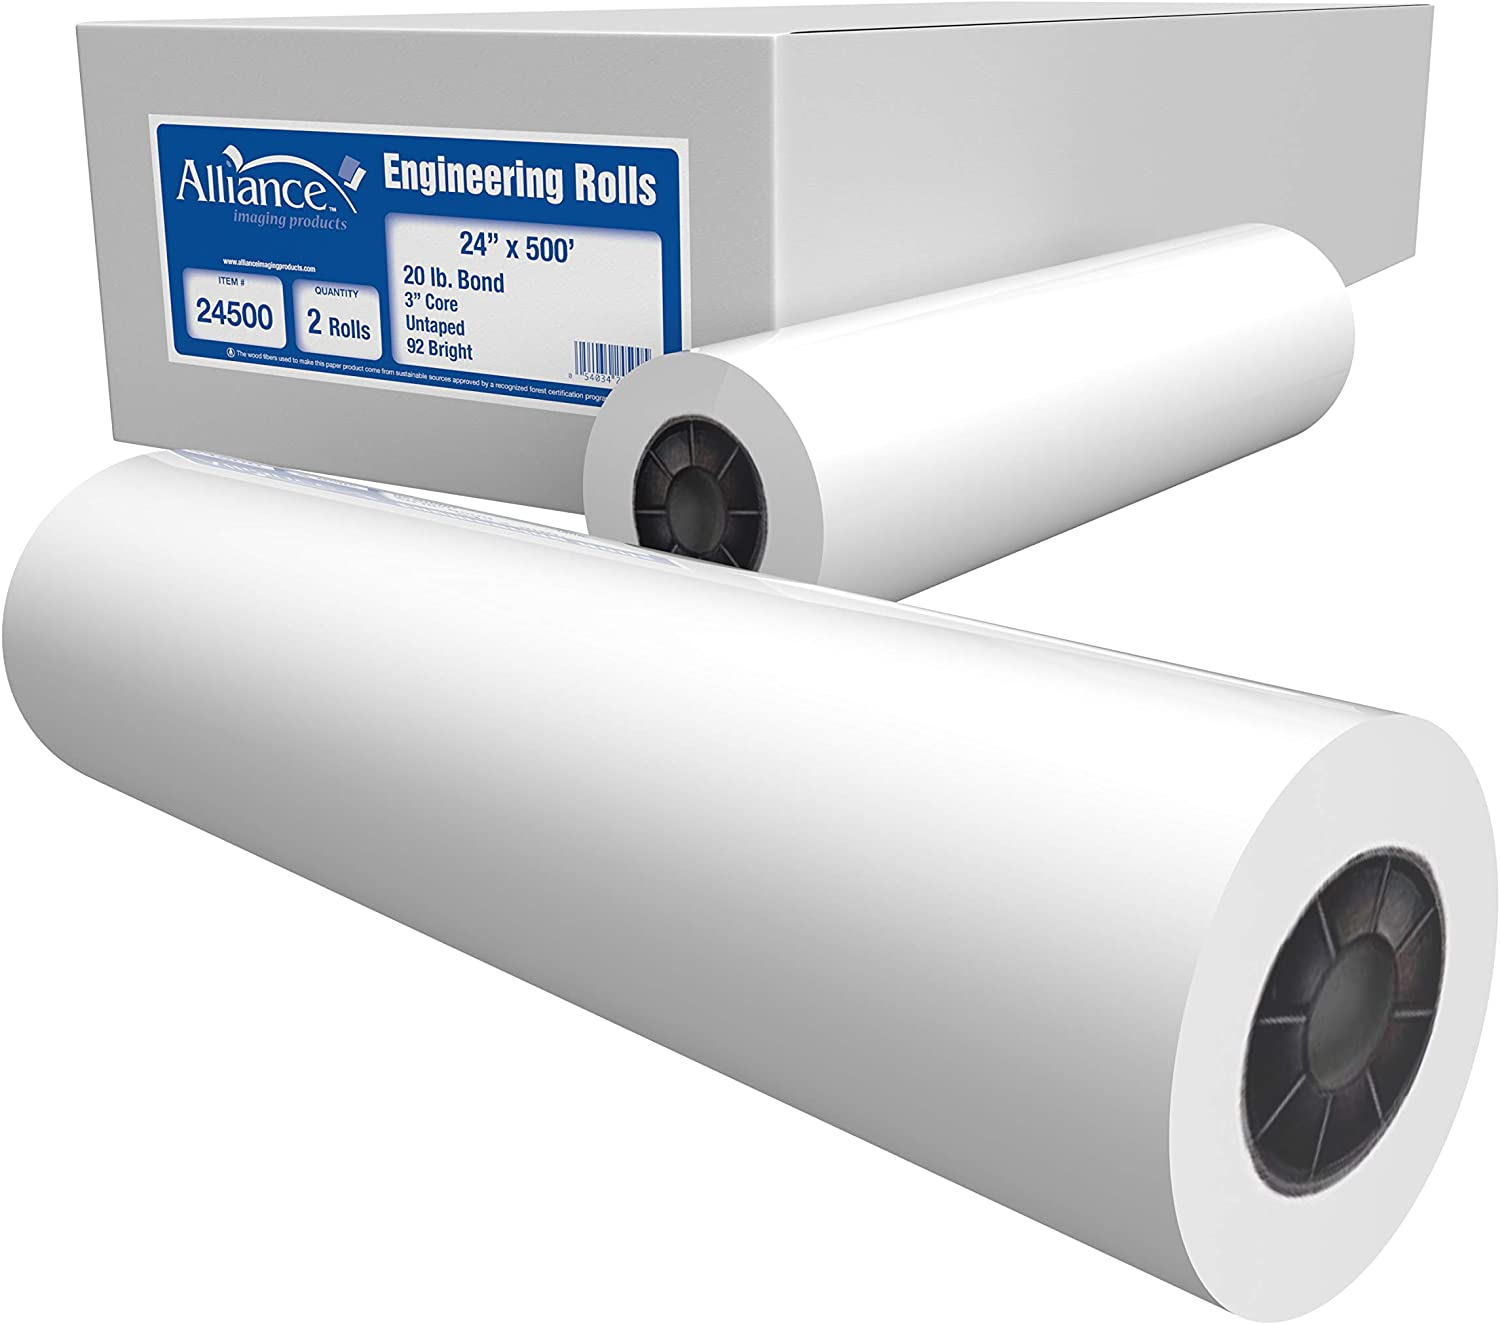 """Alliance Max 46% OFF Wide Format Paper 24"""" x Rolls Engin 500' Today's only Bond"""